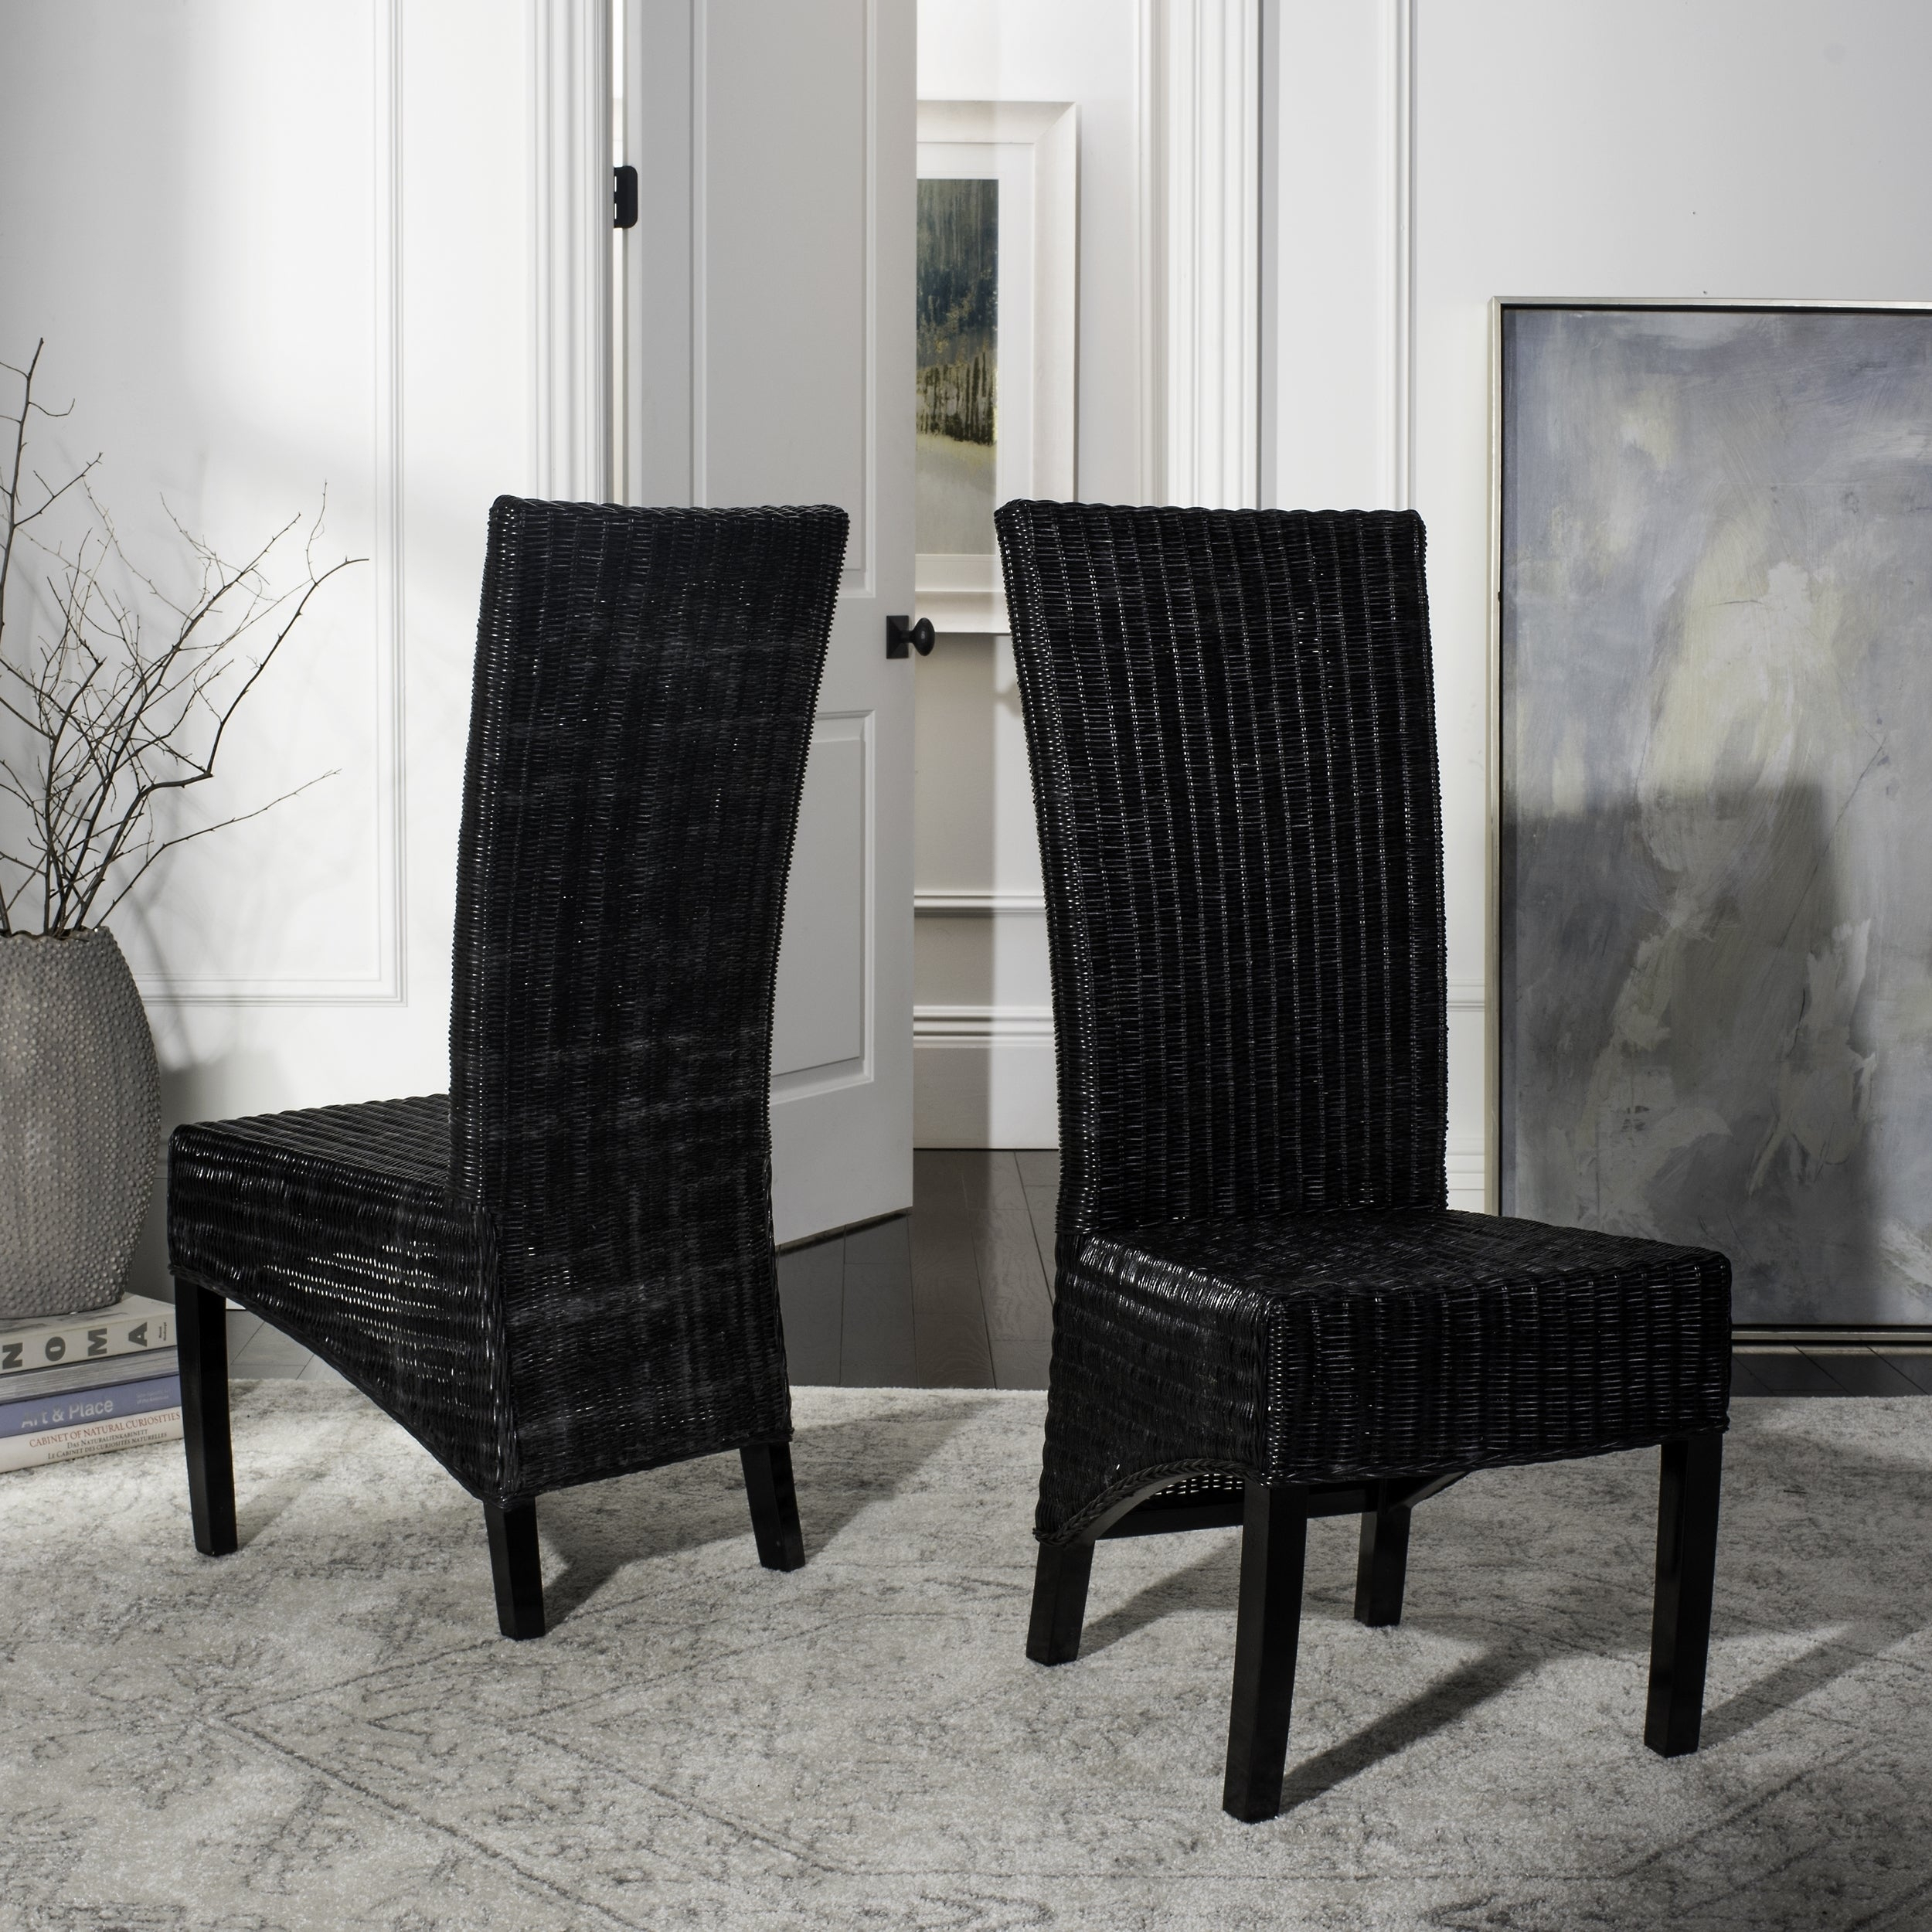 2020 Safavieh Rural Woven Dining St (#1 of 20)